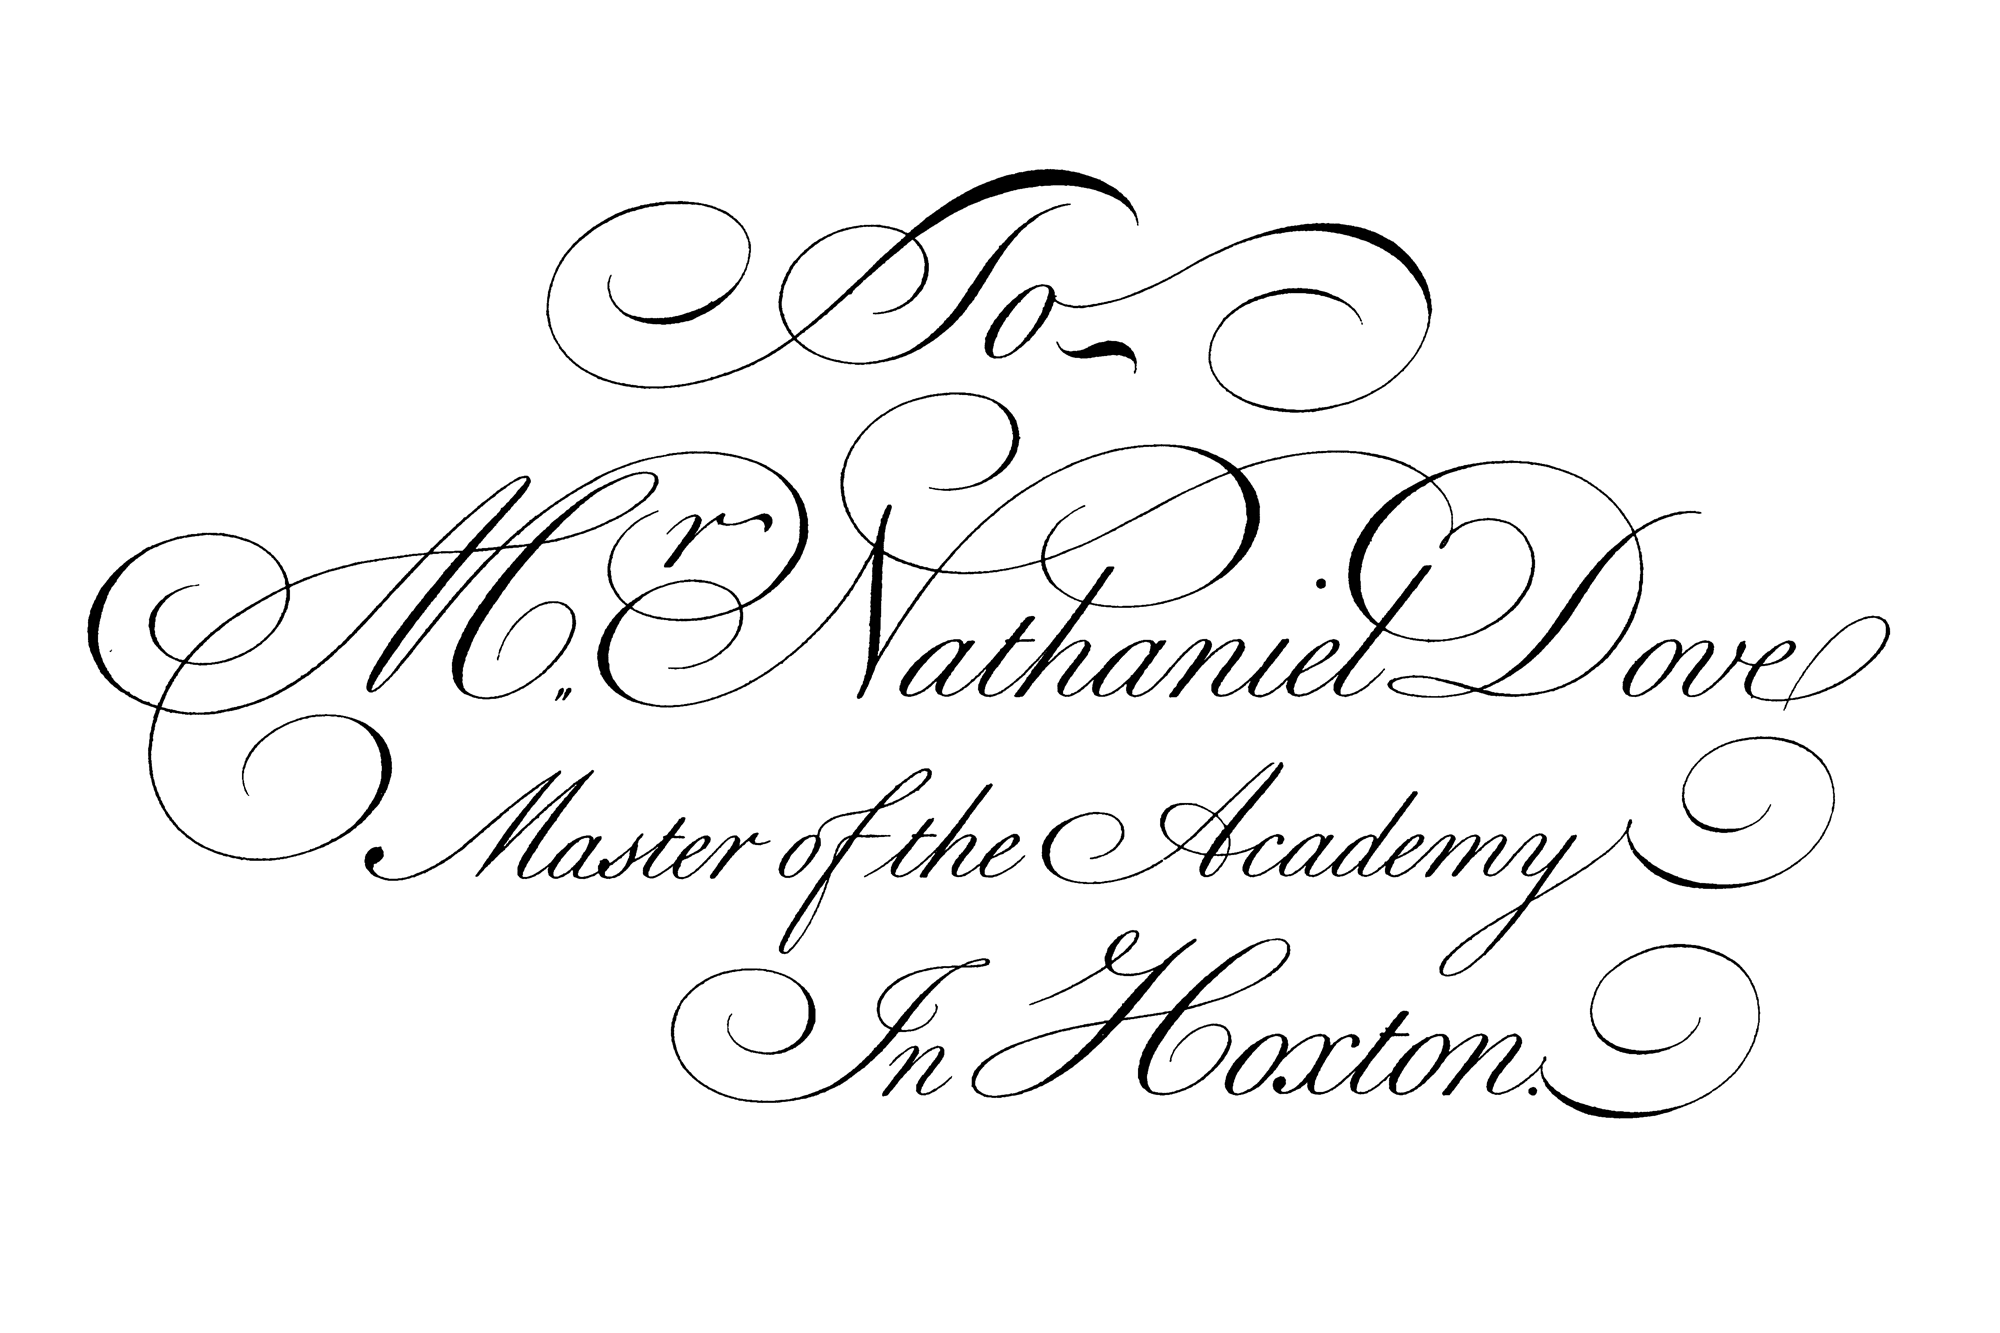 Copperplate Calligraphy Script by Bickhan